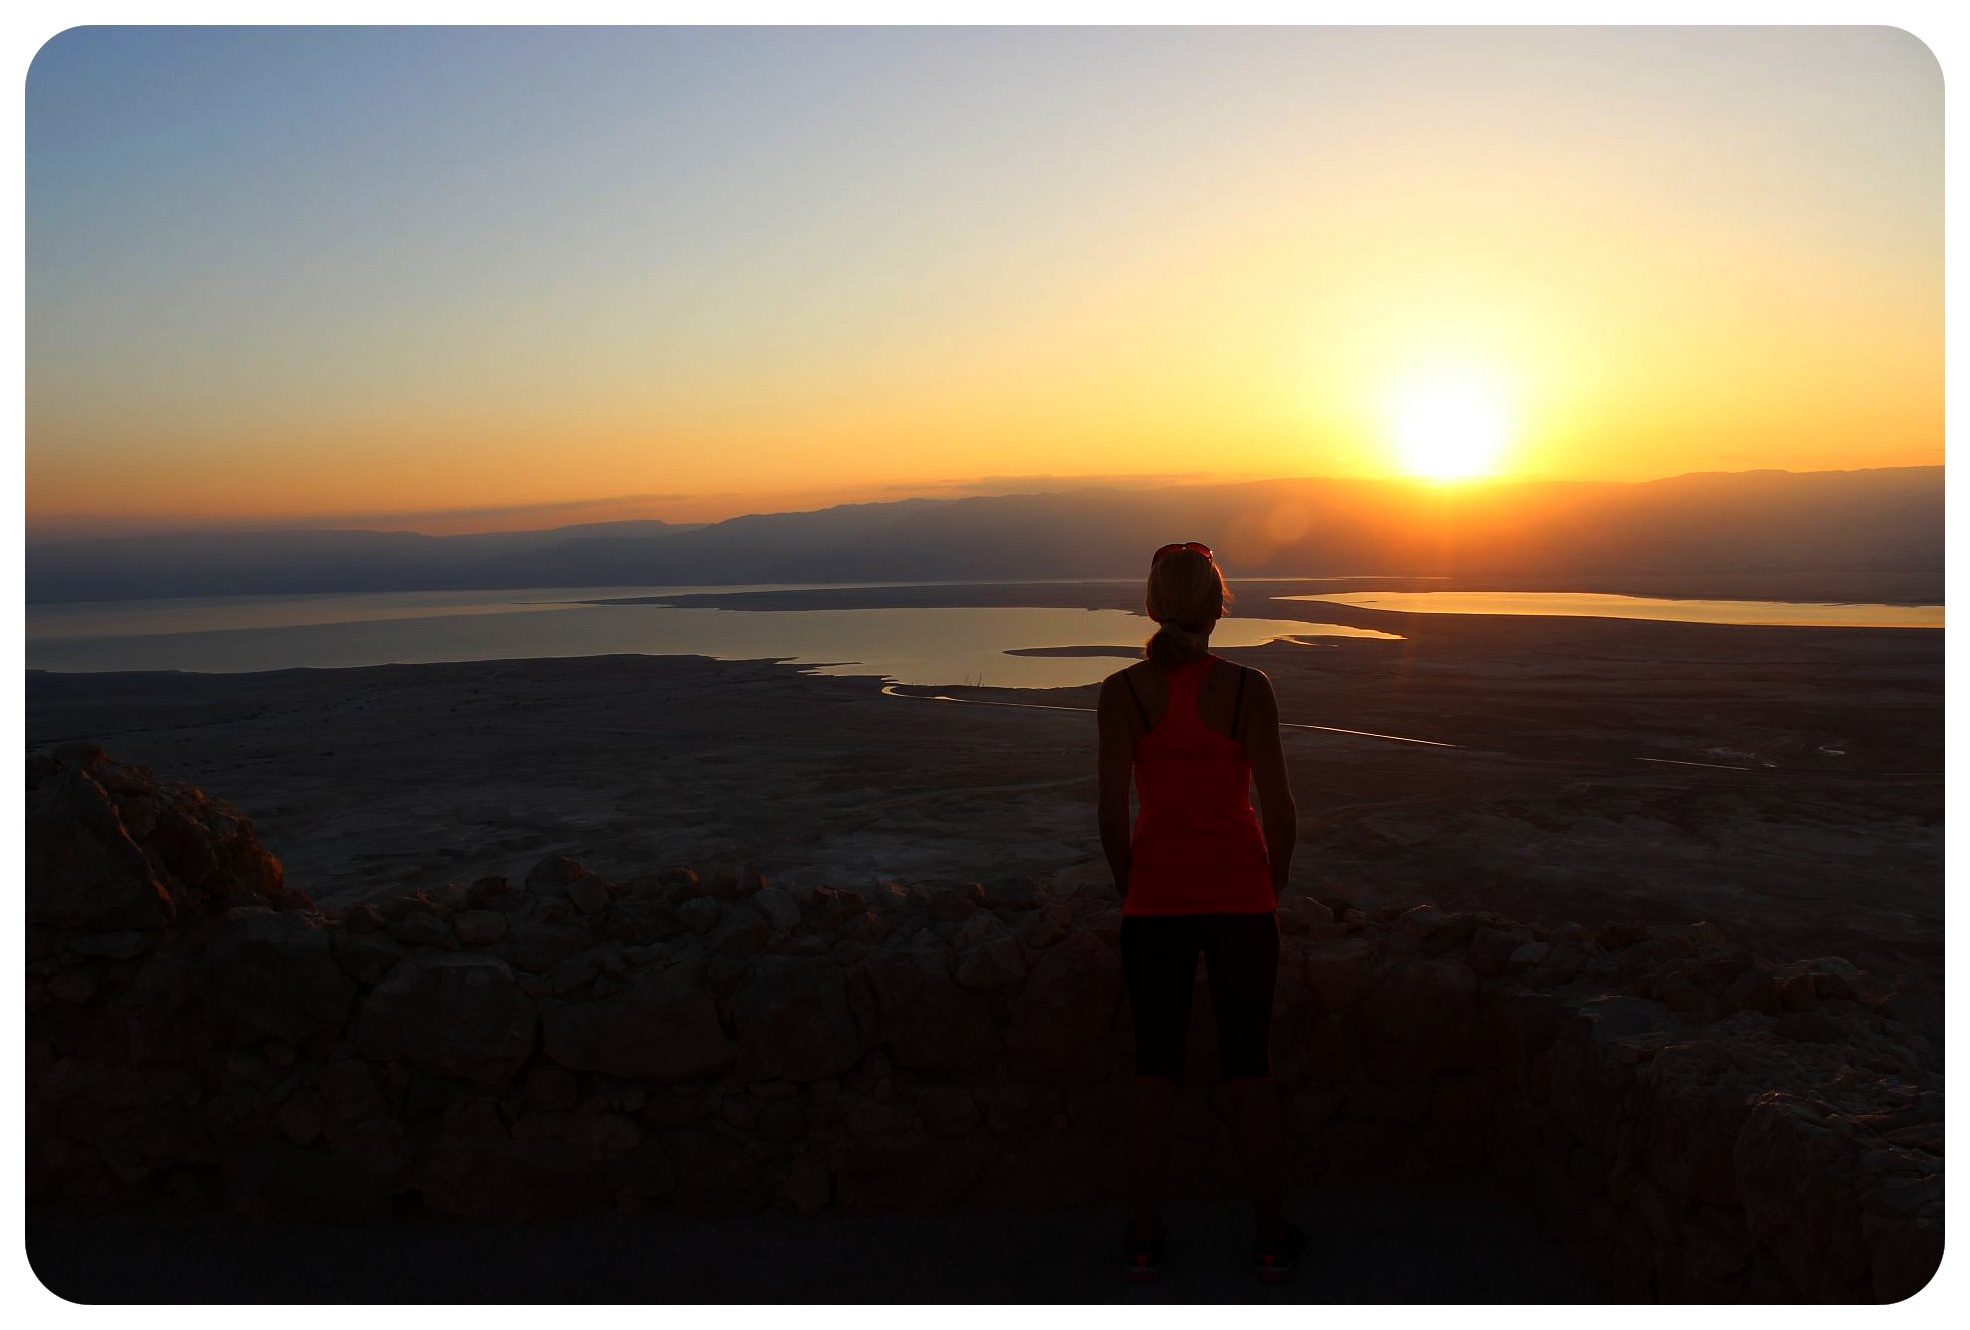 dani watching the sunrise over the dead sea